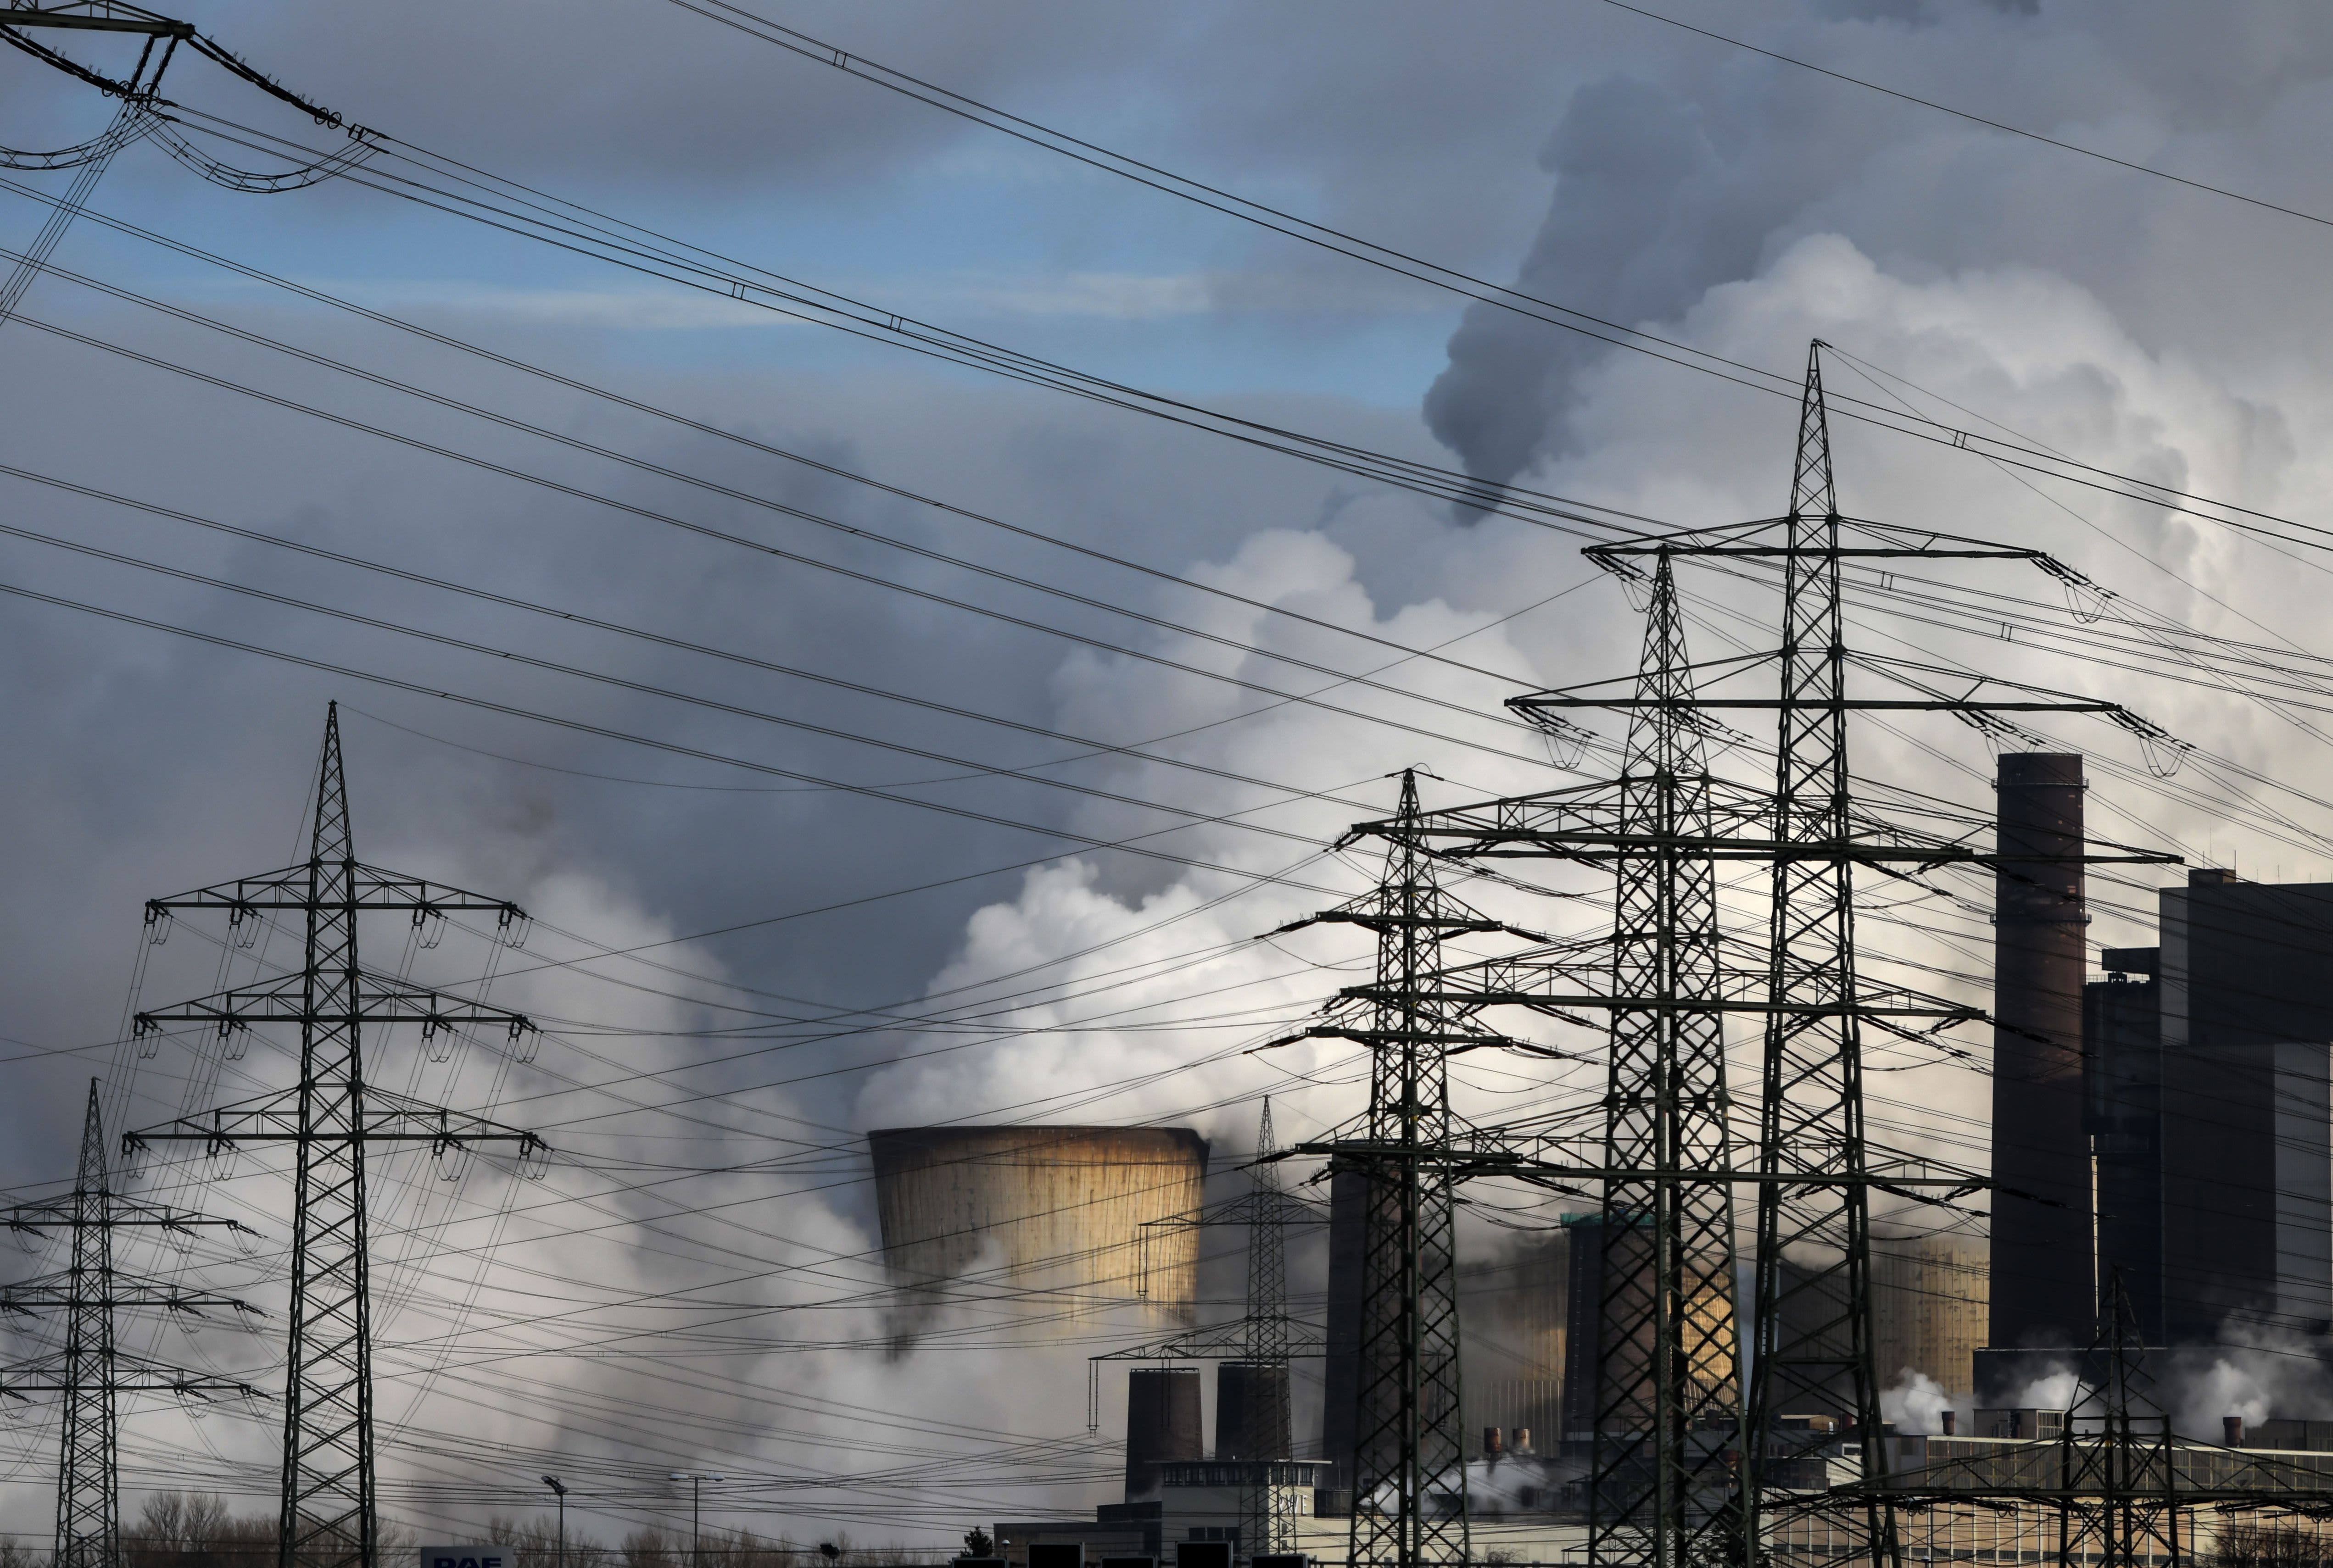 What 'energy transition'? Global fossil fuel use is accelerating and set to get even worse